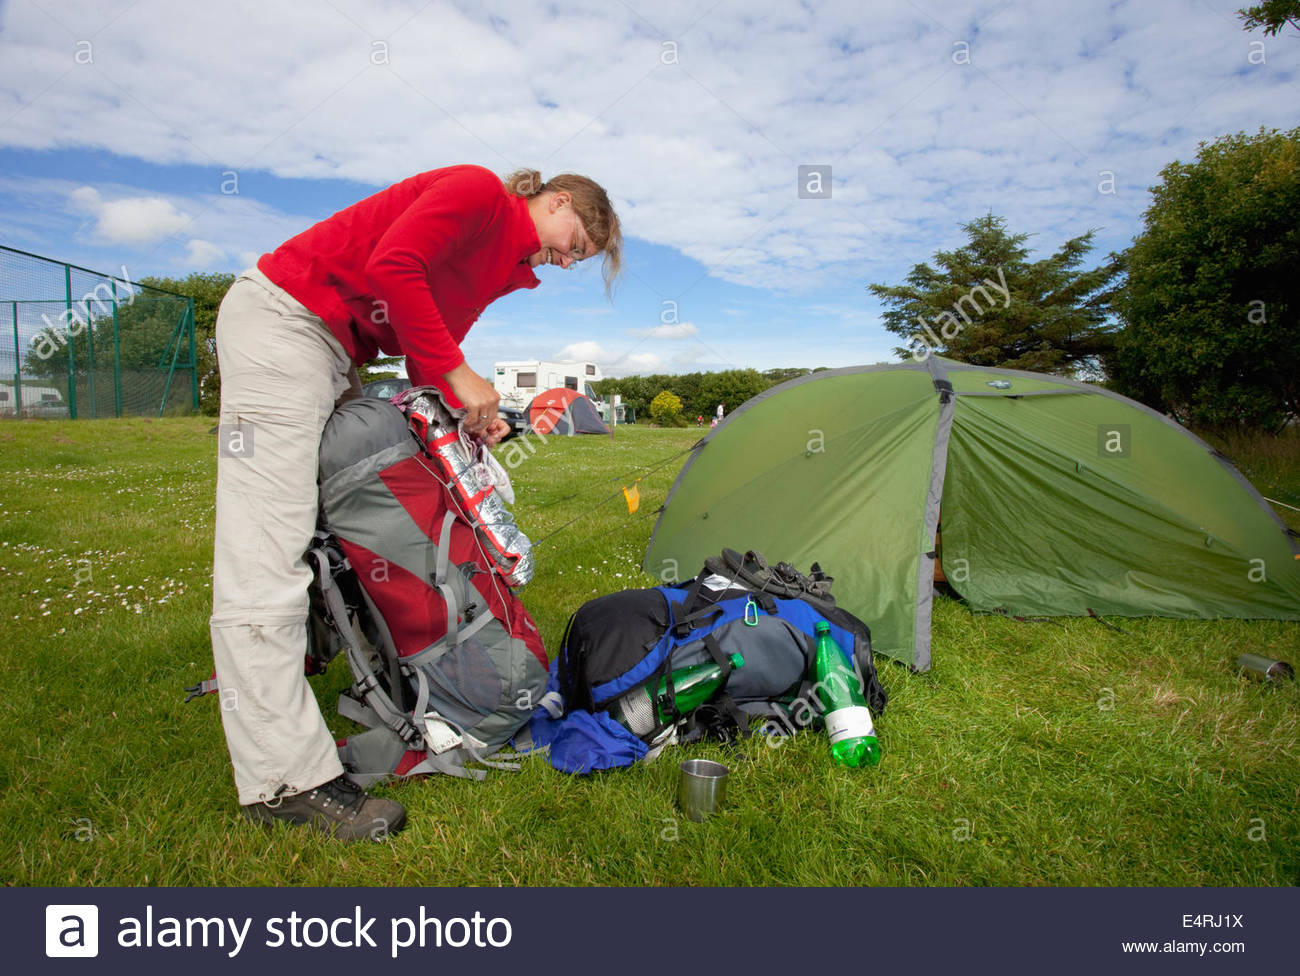 A couple by their tent at the Pickaquoy Caravan and Camping Site, Kirkwall, Mainland, Orkney, Scotland. - Stock Image